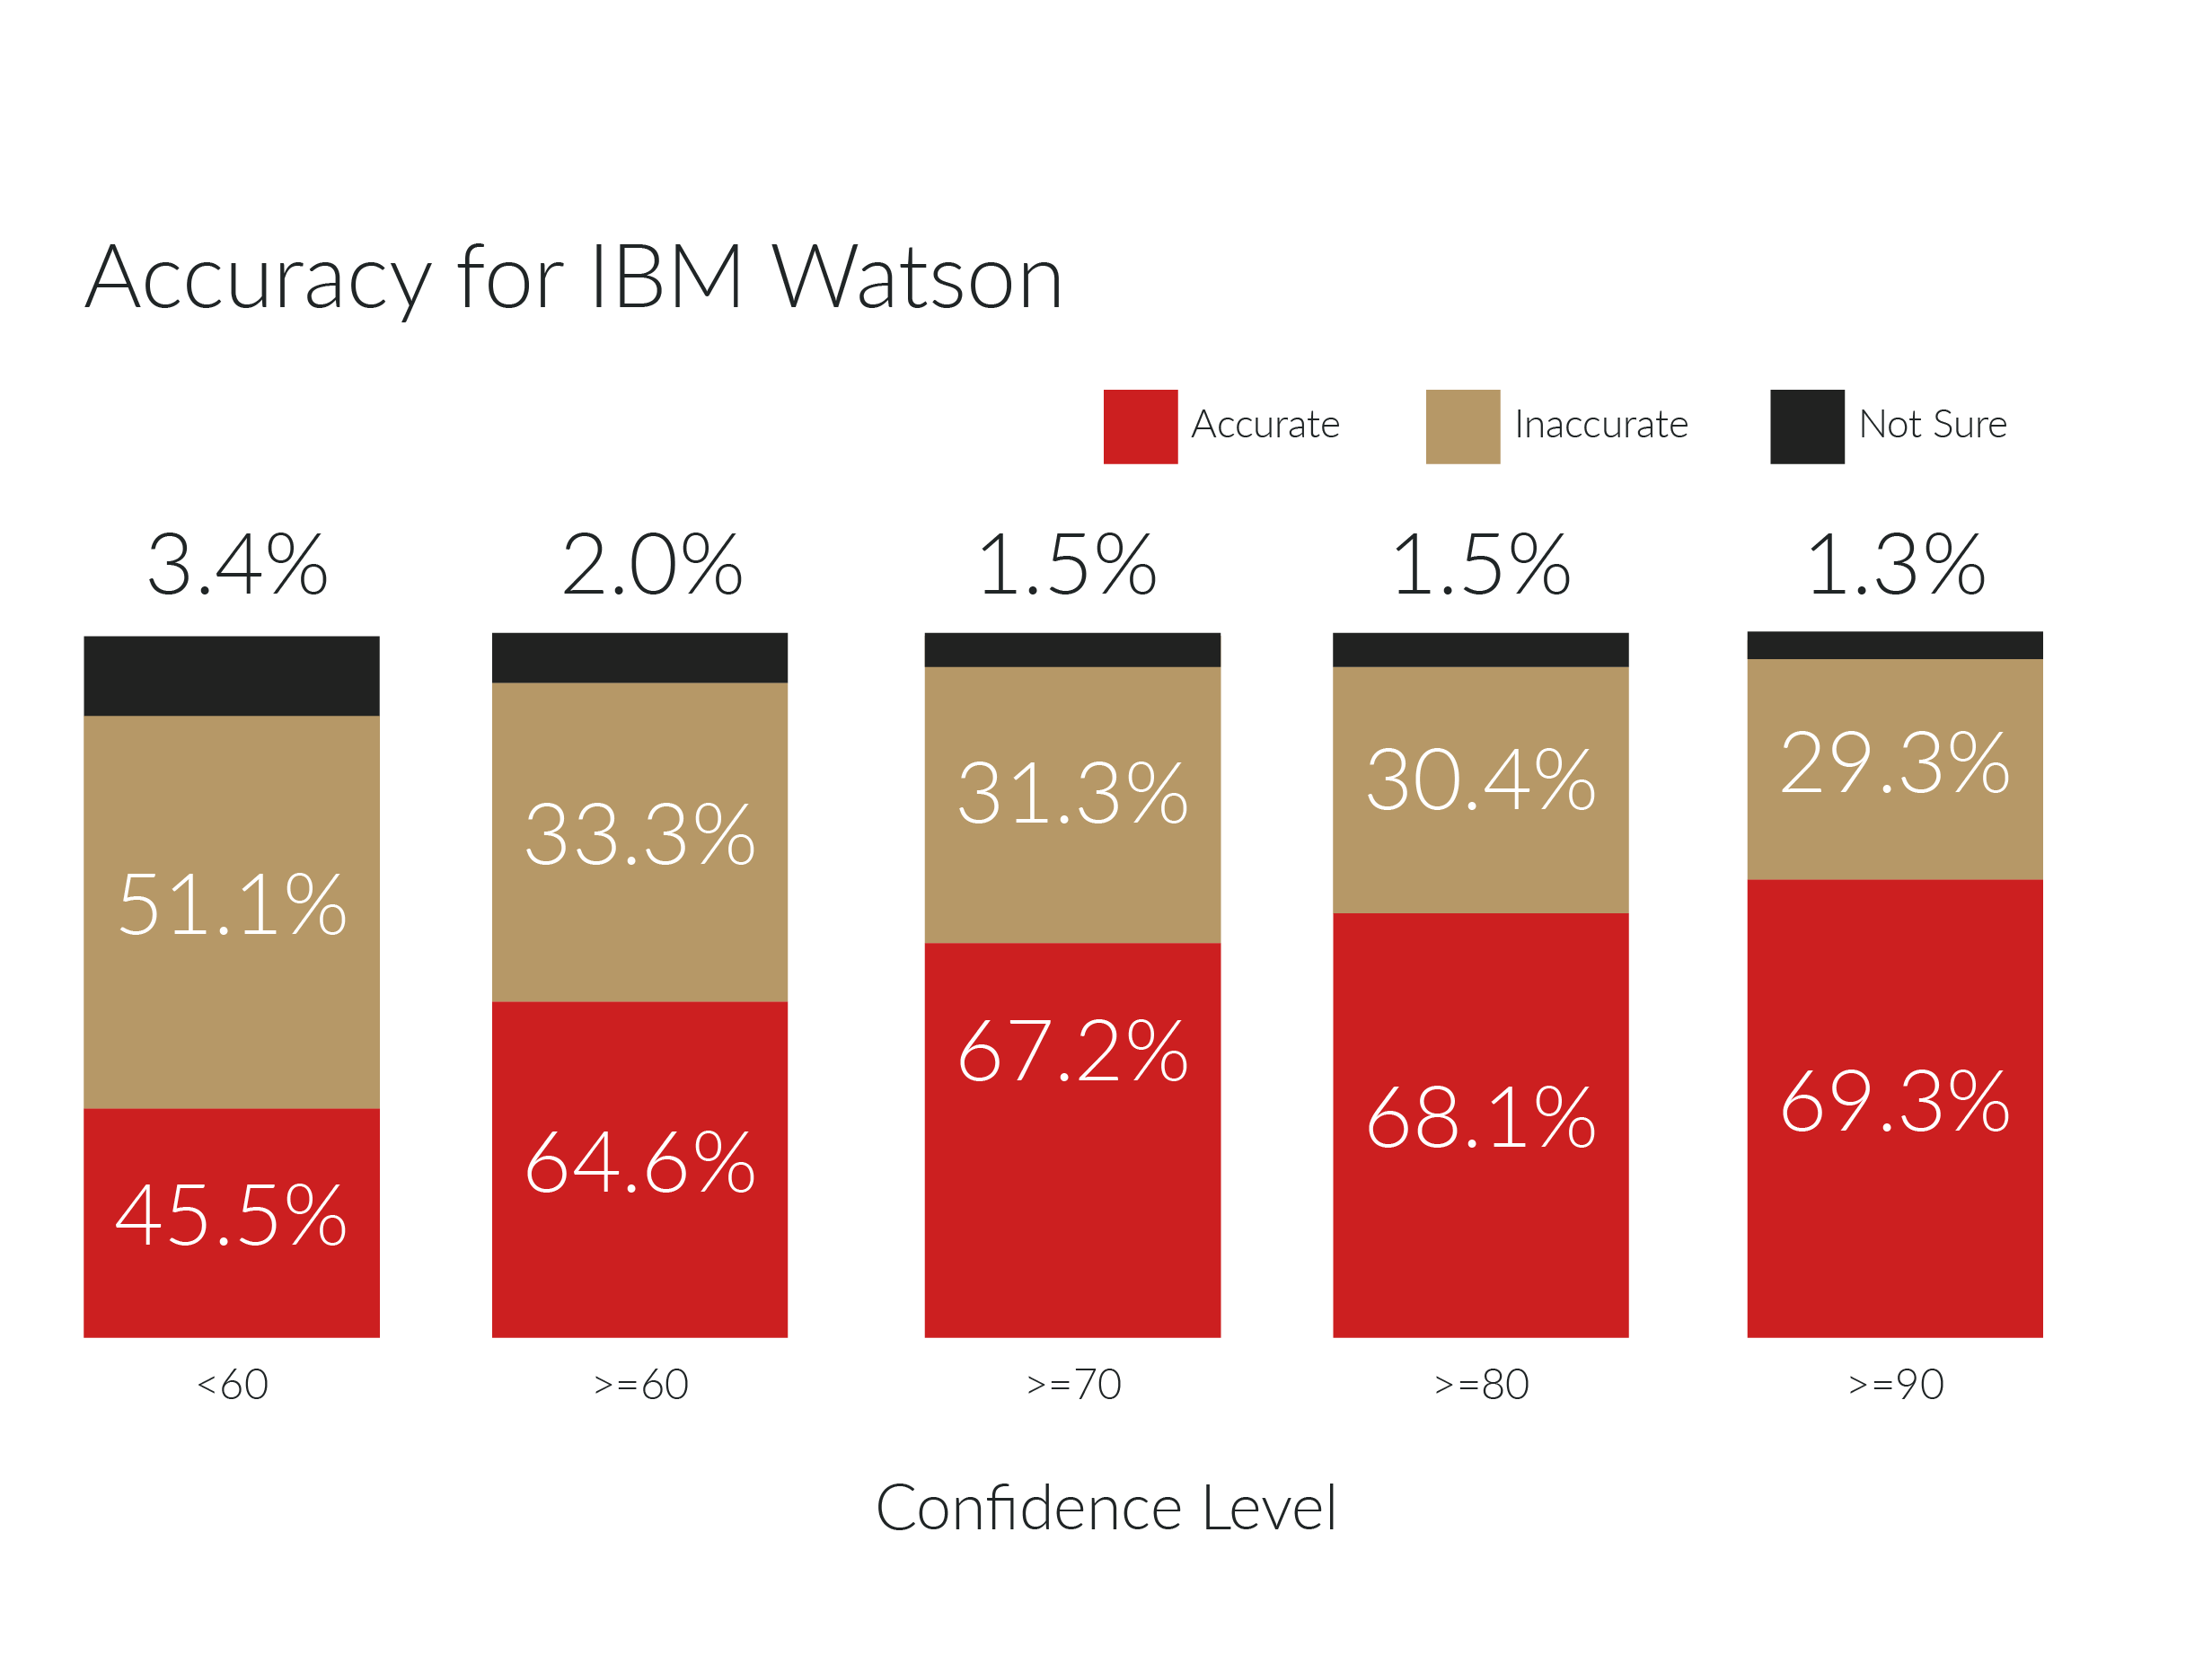 IBM Watson accuracy score of returned image tags in percentage by confidence level.